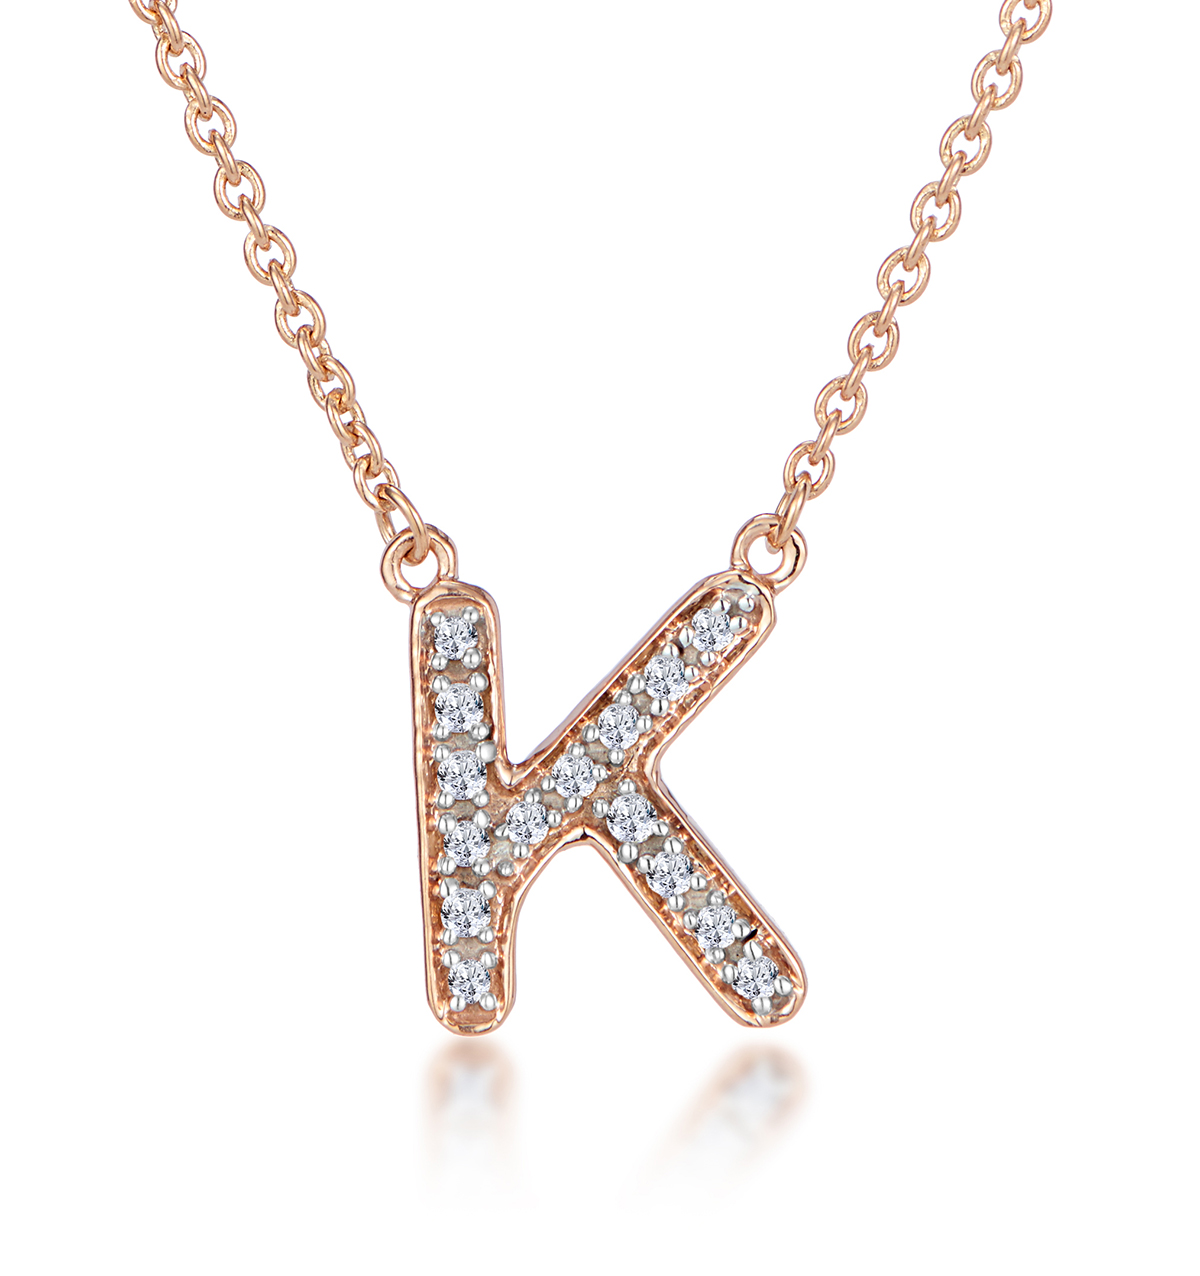 Diamond Encrusted Initial 'K' Necklace Pave Set in 9K Rose Gold